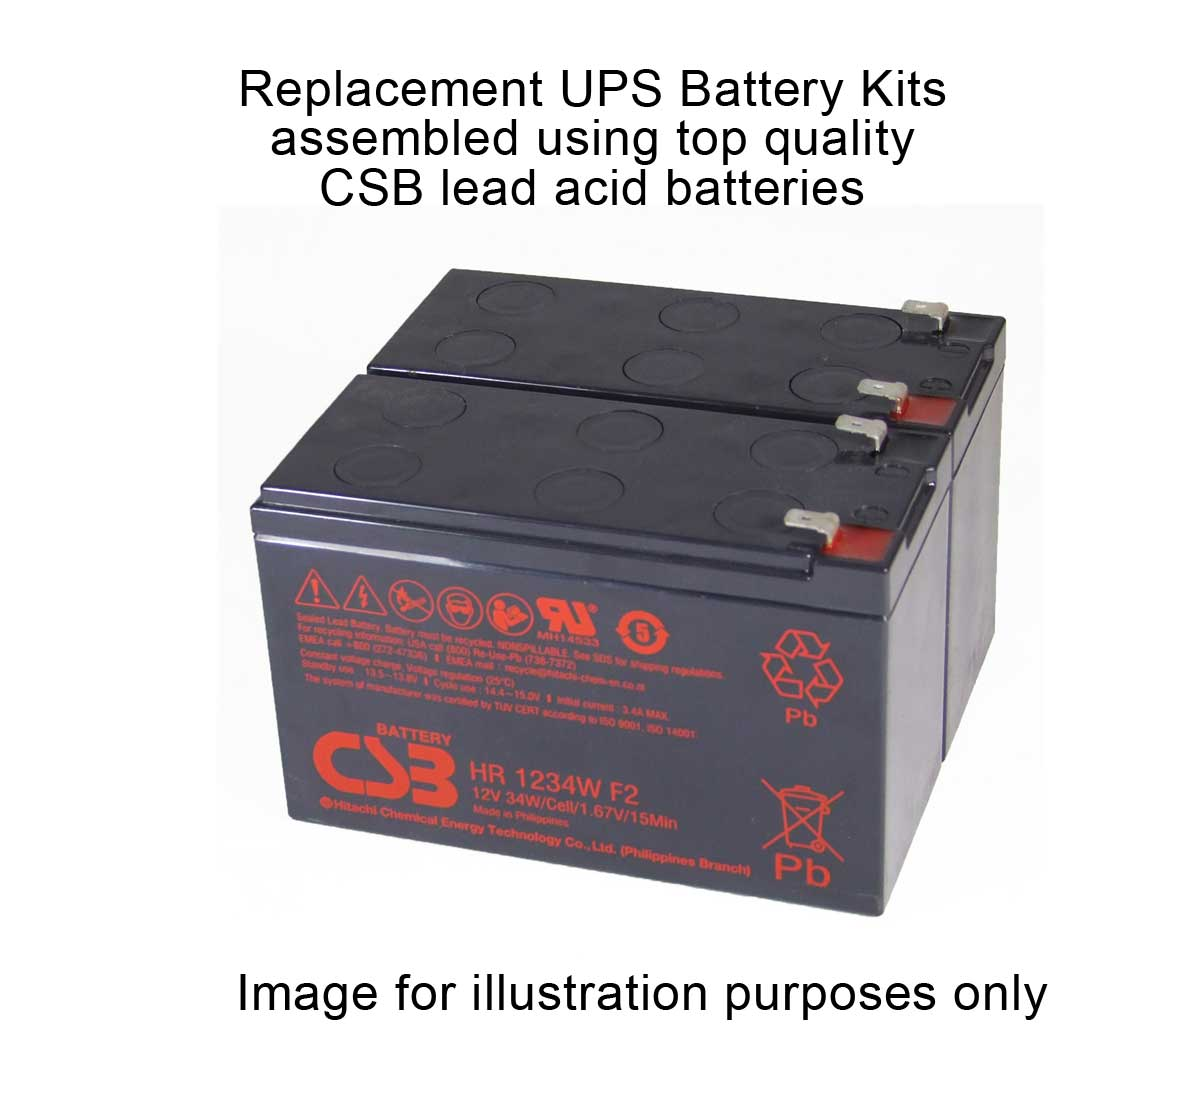 Dell Replacement UPS Battery Kit